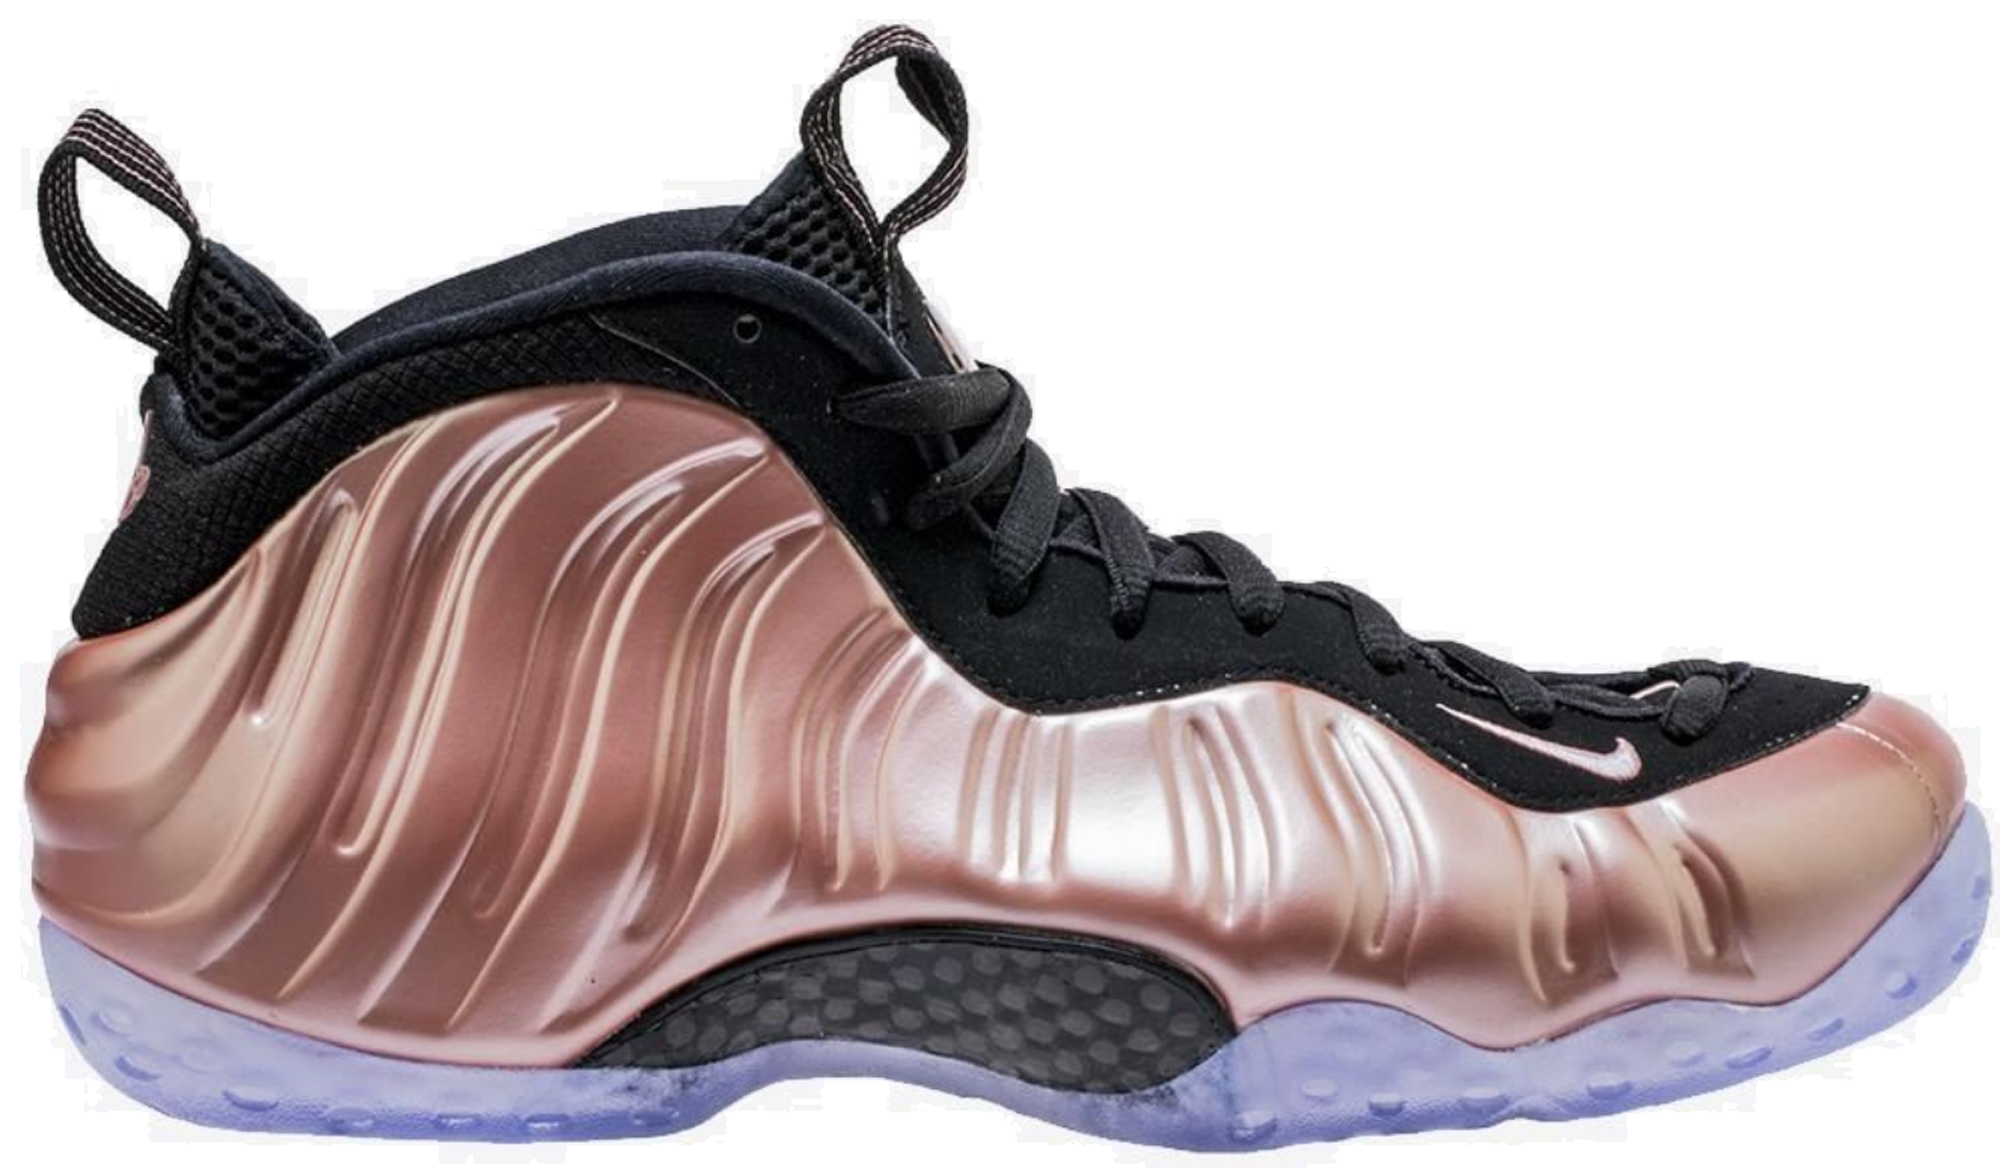 on sale 3c98d a97b1 Nike Air Foamposite One Elemental Rose